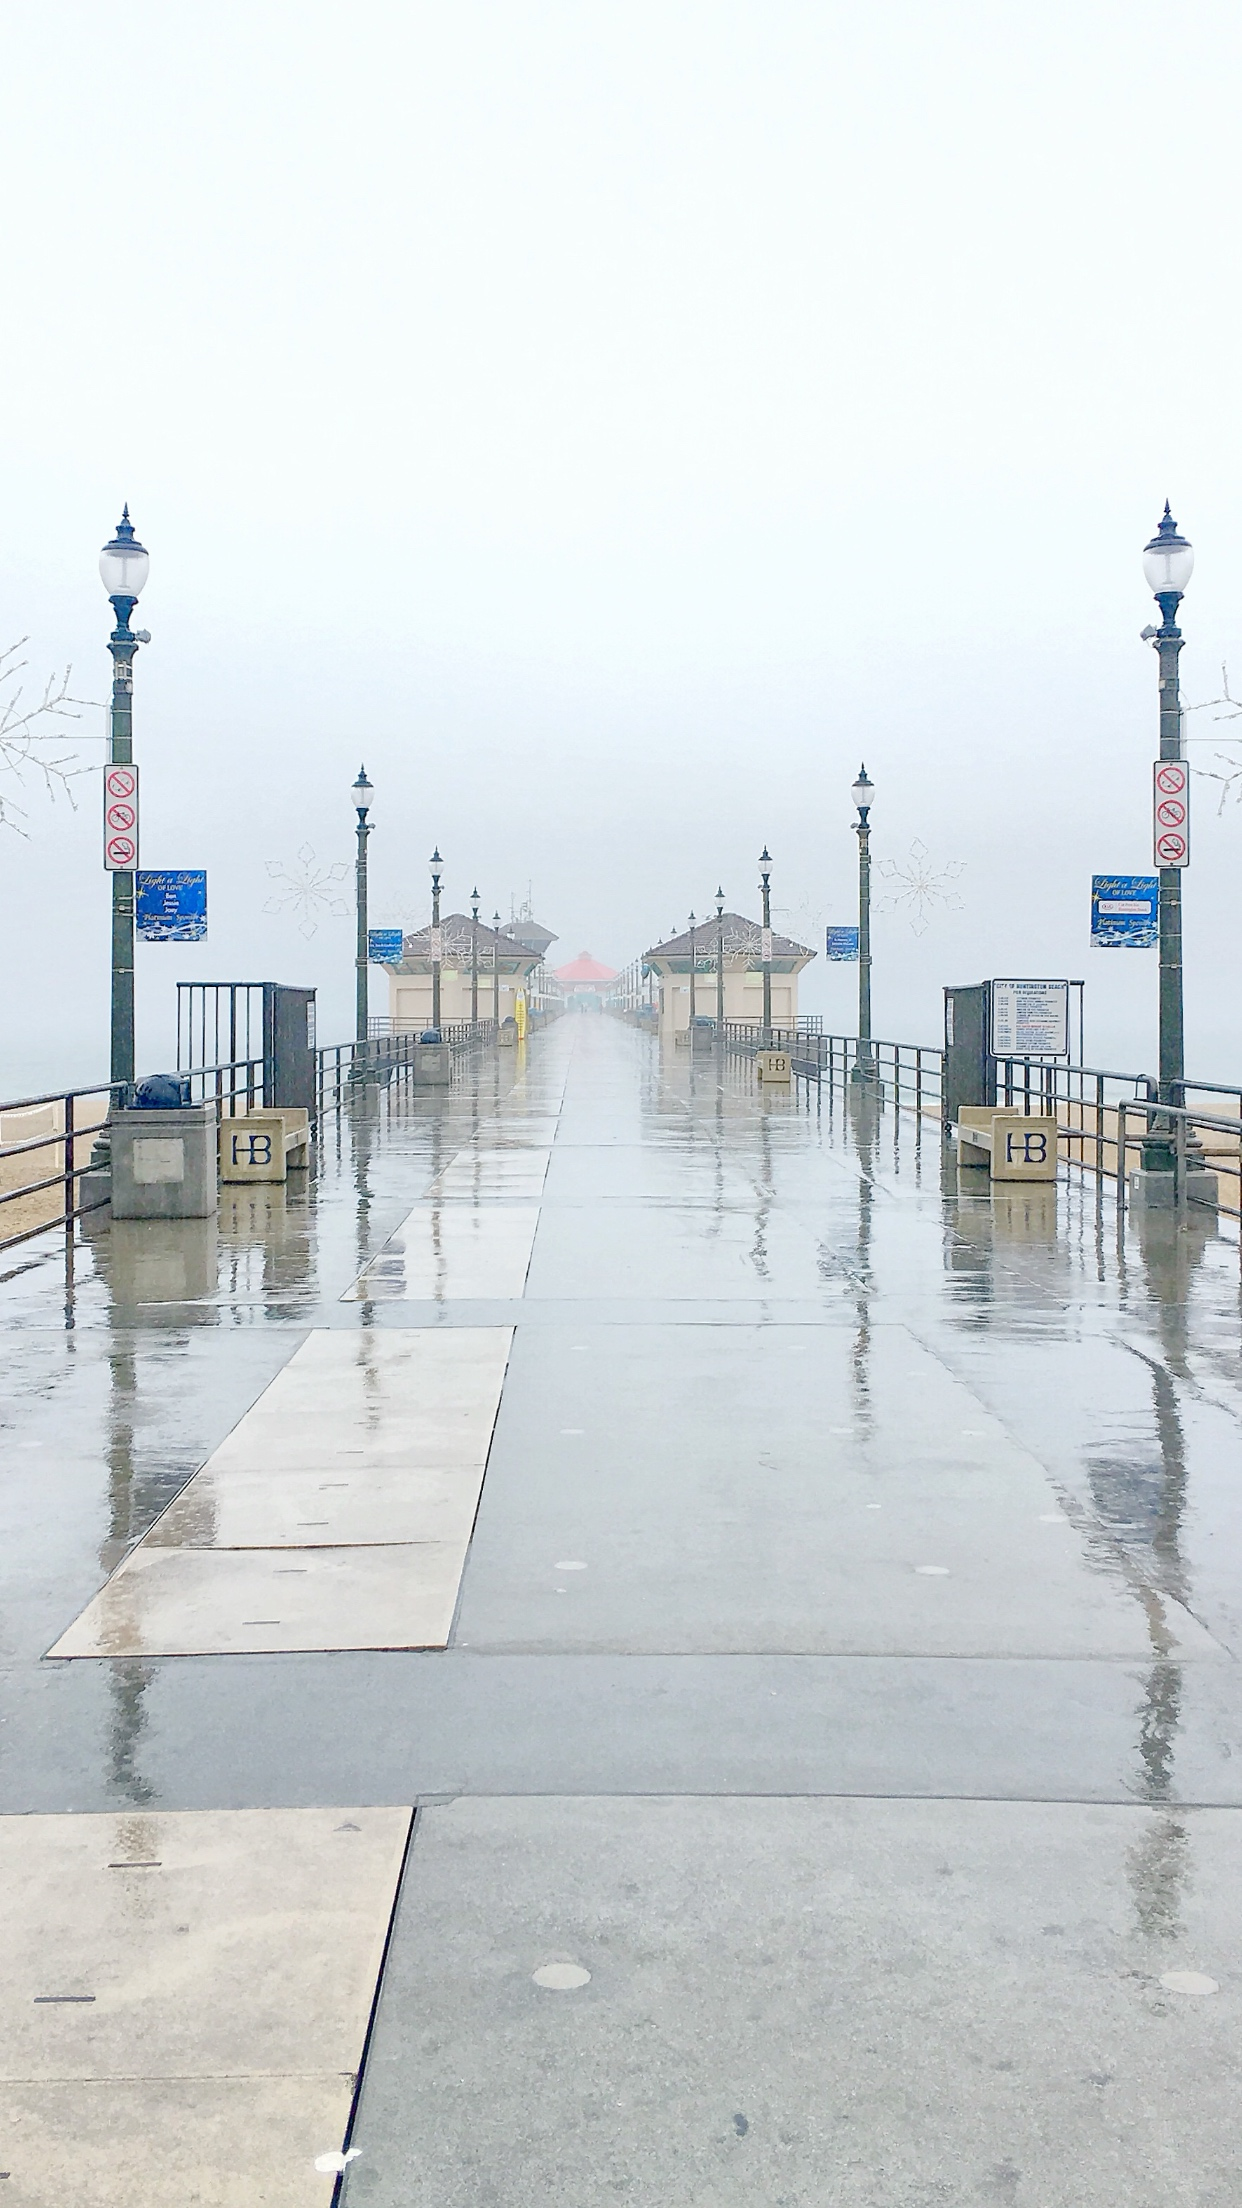 Rainy Huntington Beach Pier by Larry Tenney